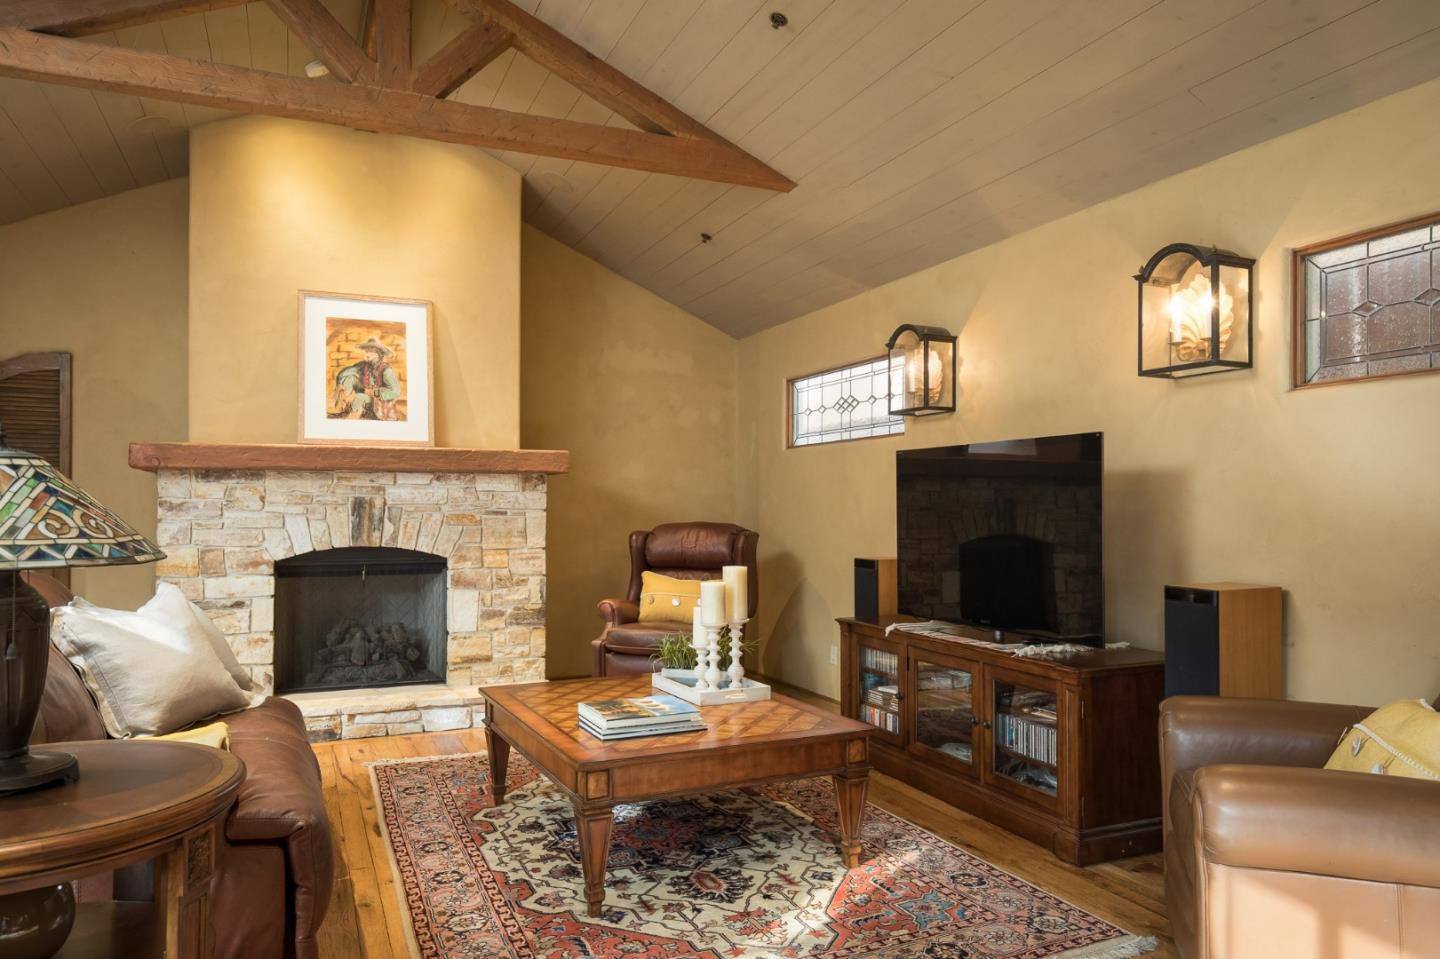 Classic Board and Batten Cottage in Carmel-by-the-Sea for sale -Living Room with fireplace